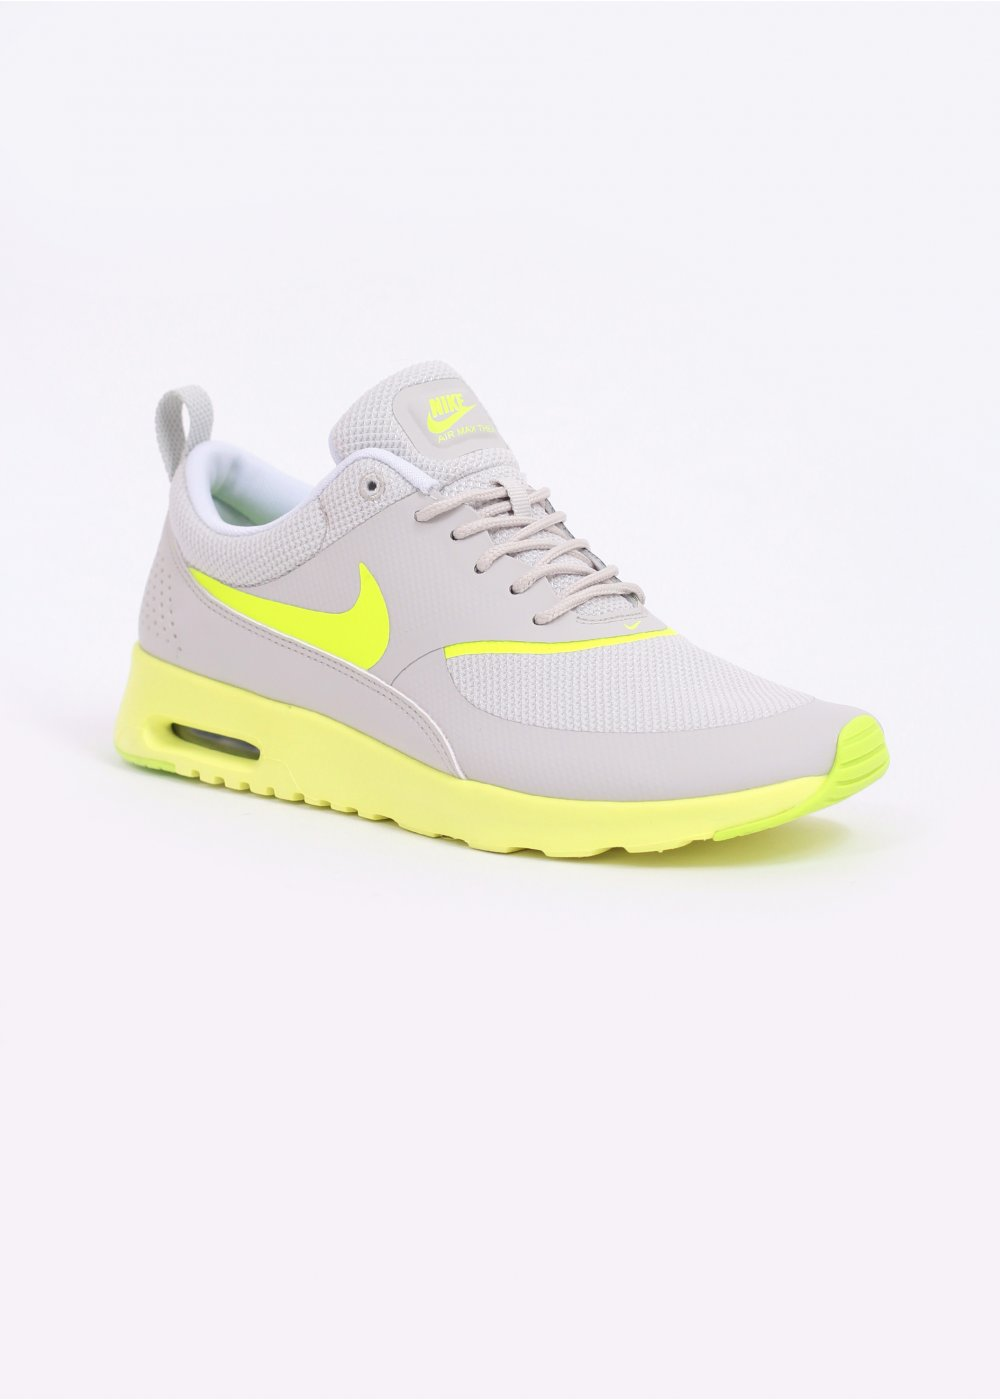 nike air max thea yellow. Black Bedroom Furniture Sets. Home Design Ideas